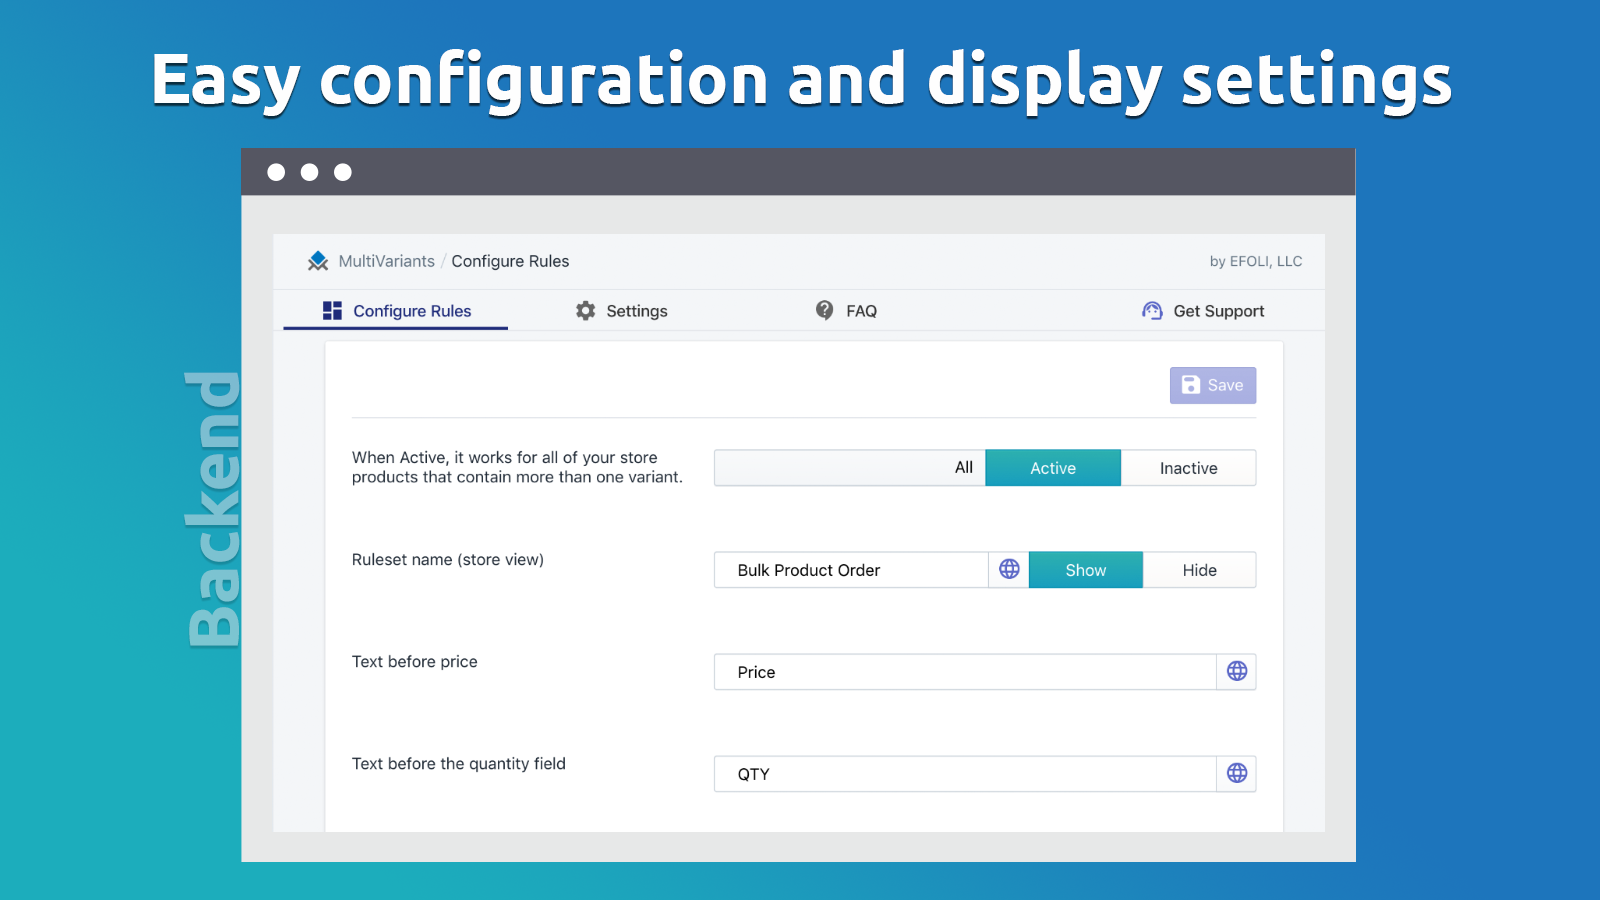 Easy configuration and display settings